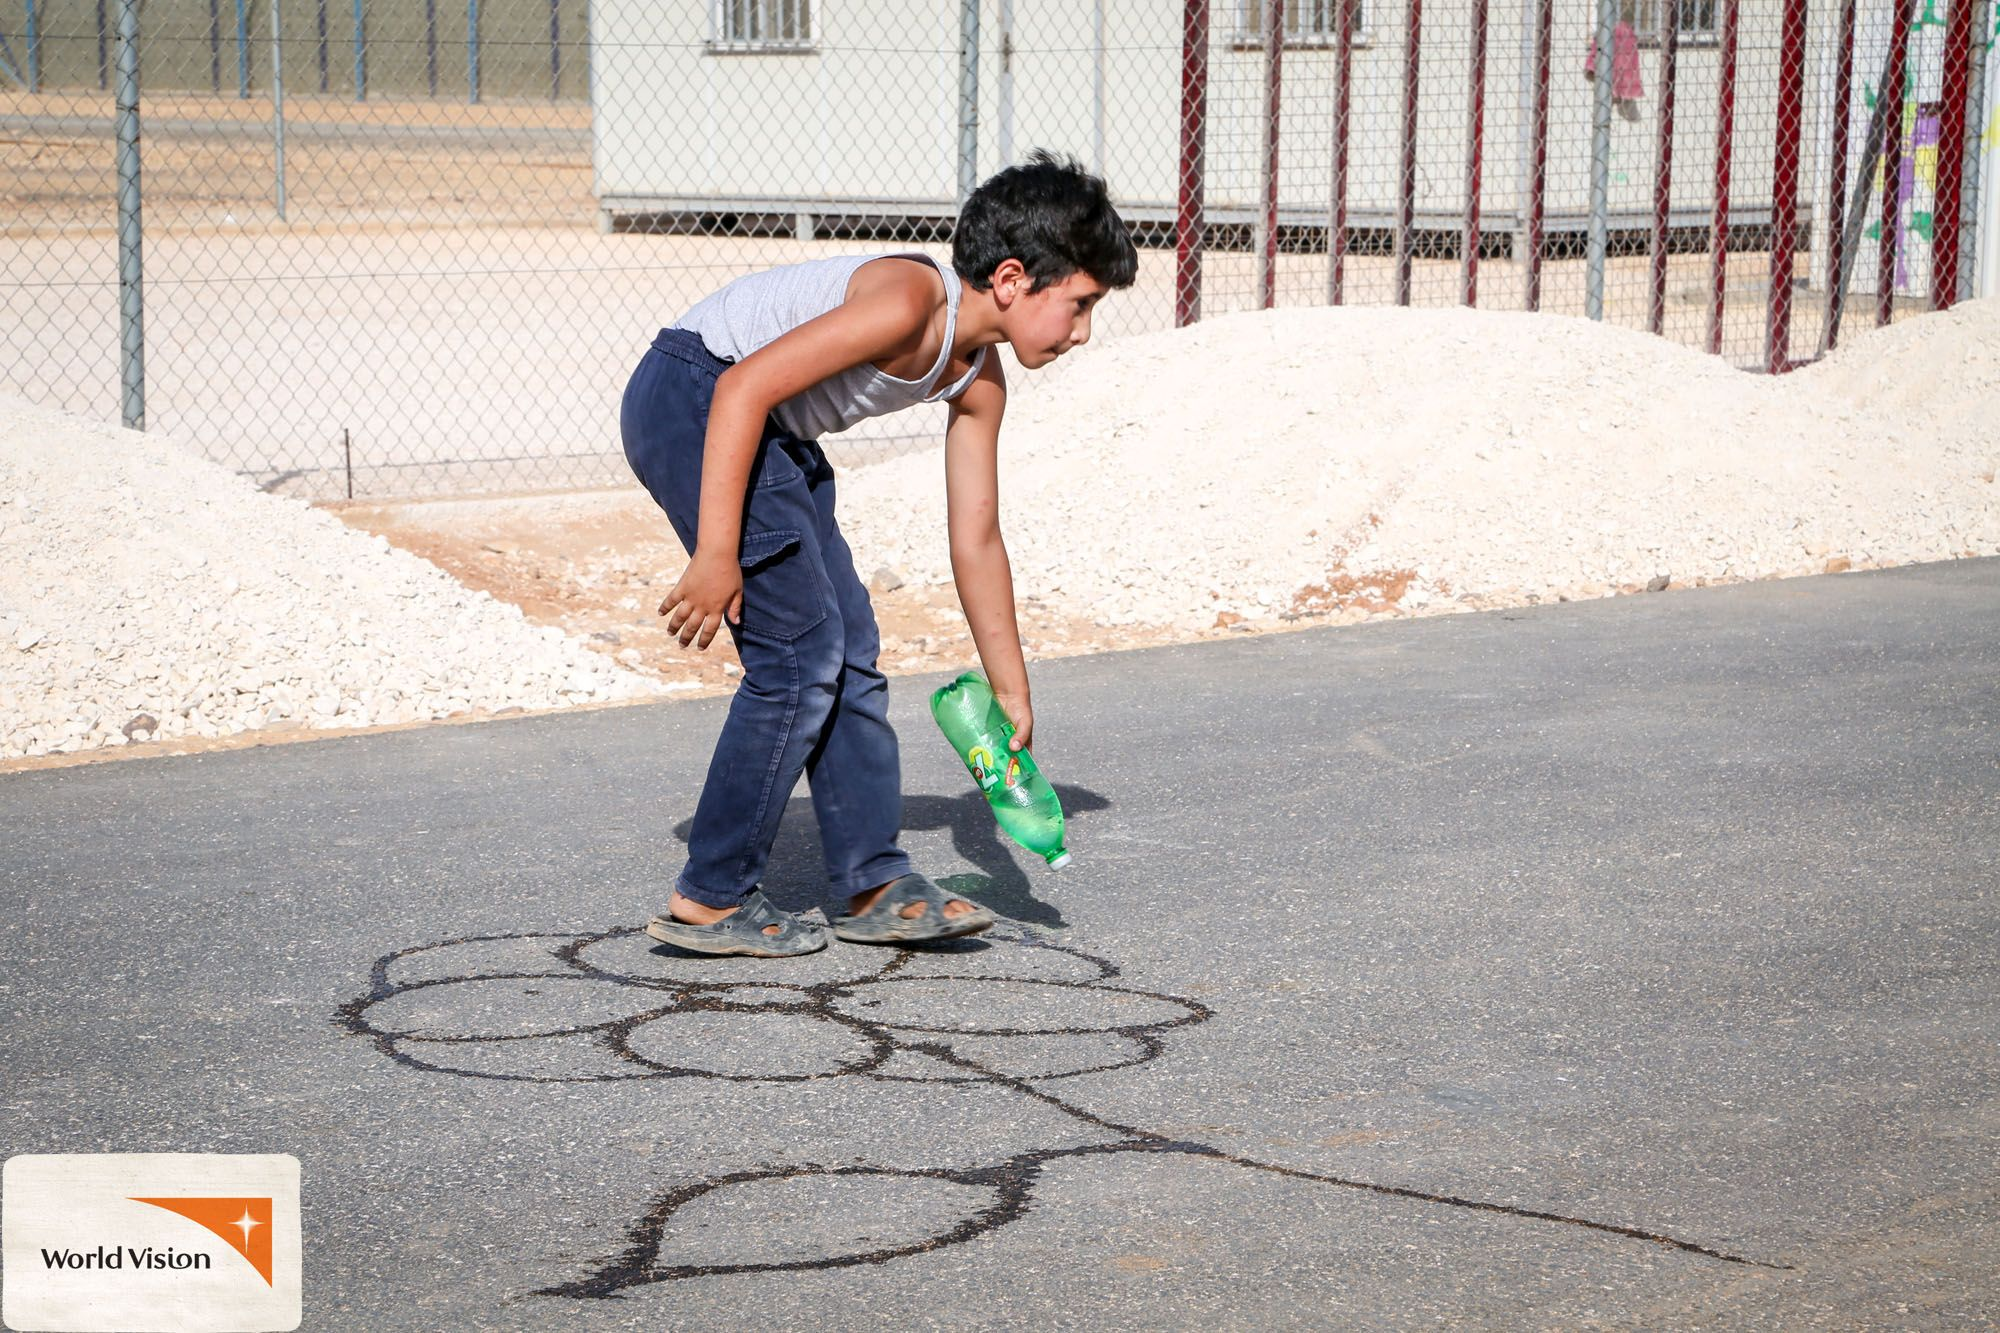 Abdullah, a 12-year-old #Syrian #refugee, loves drawing in the streets using #water! Photo by Elias Abu Ata, #WorldVision